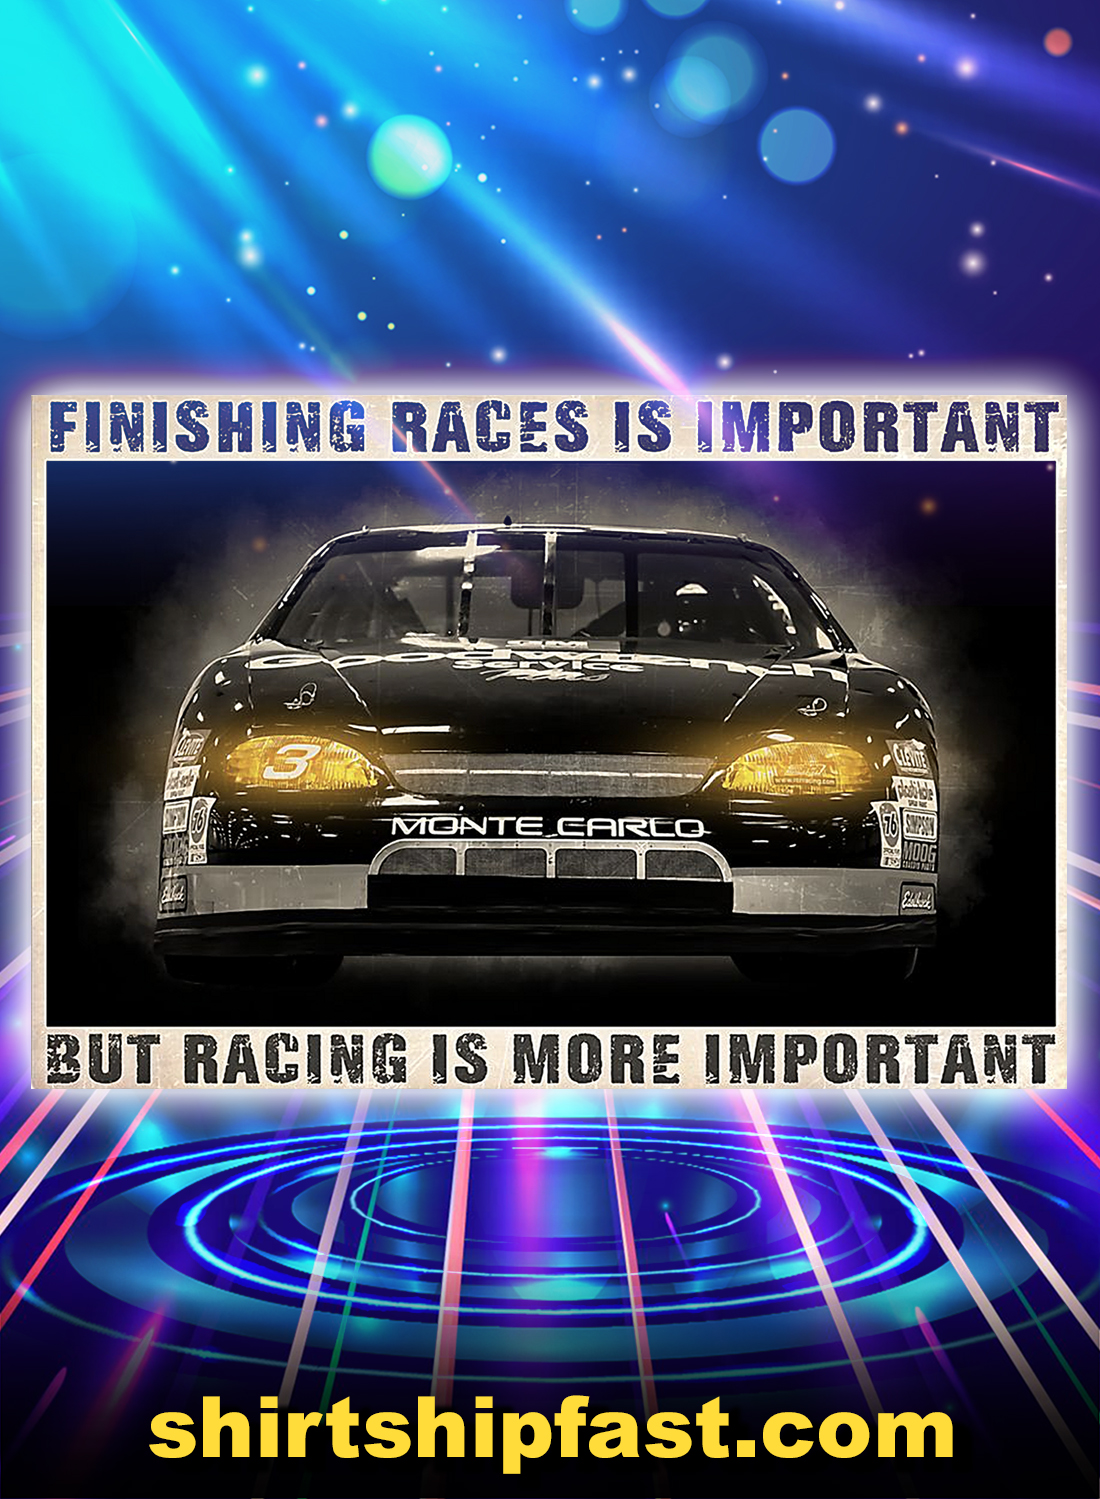 Car finishing races is important but racing is more important poster - A4